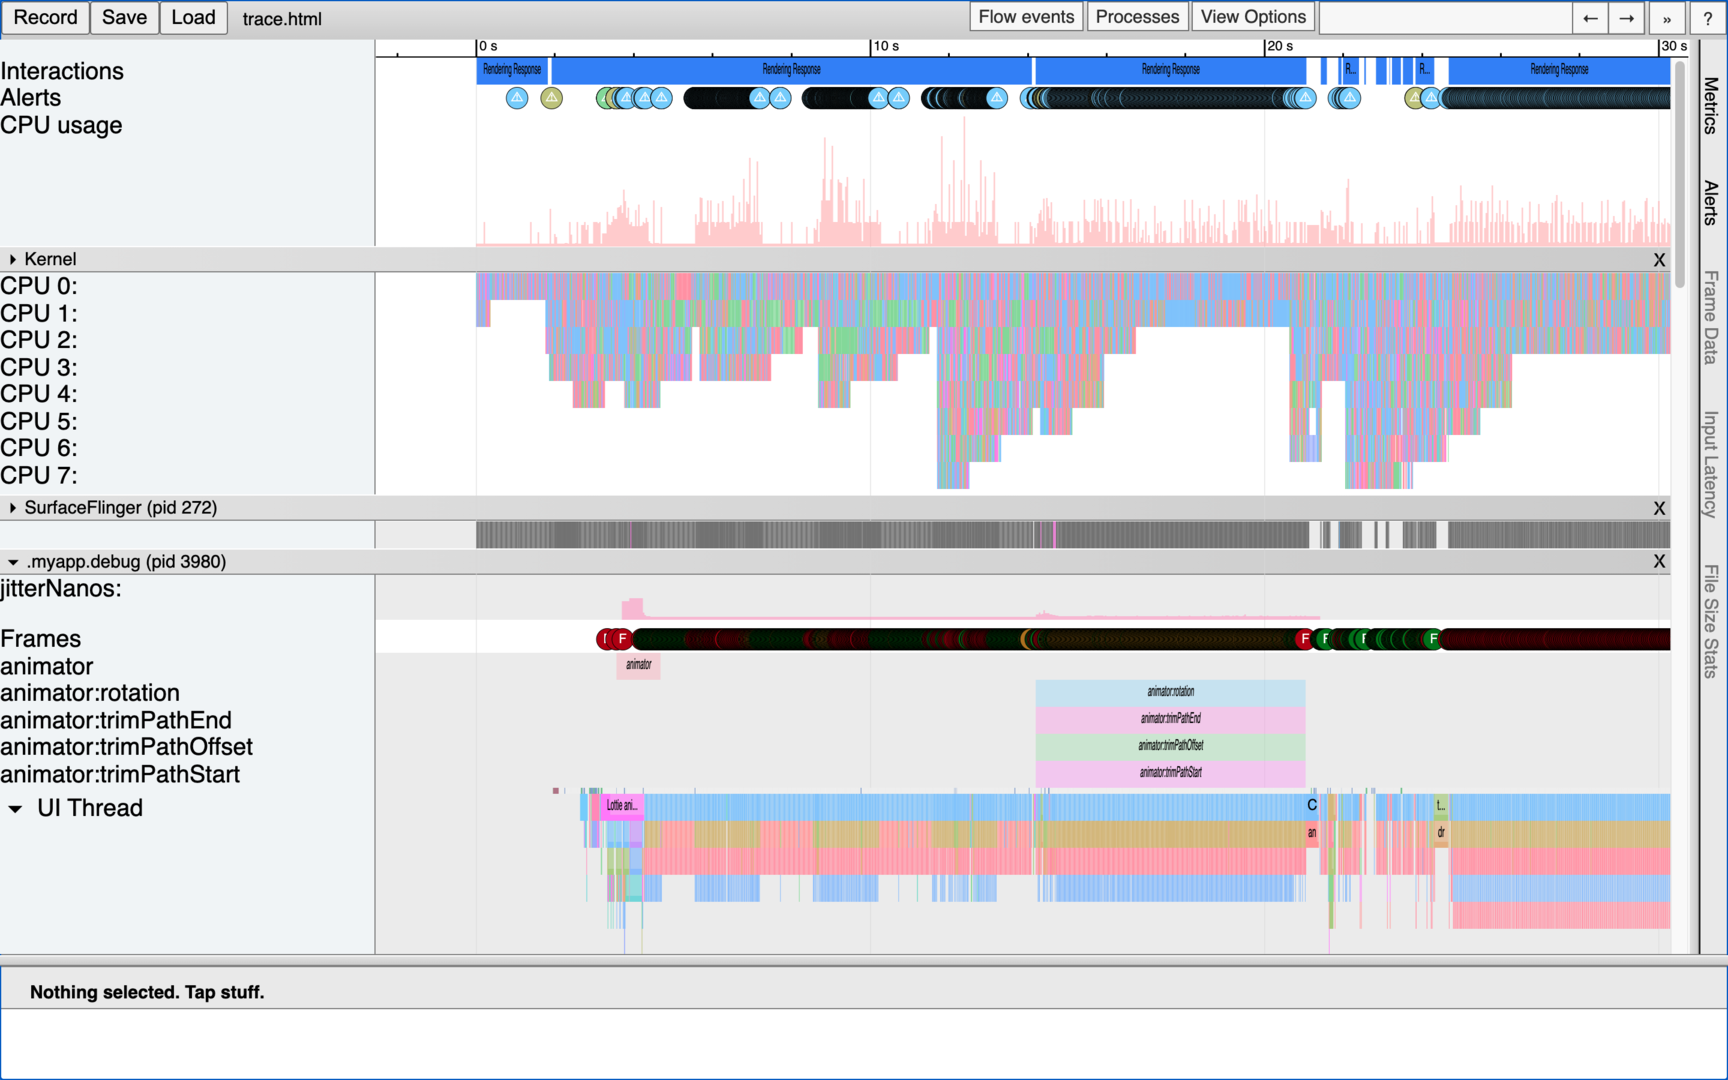 First look at a trace file